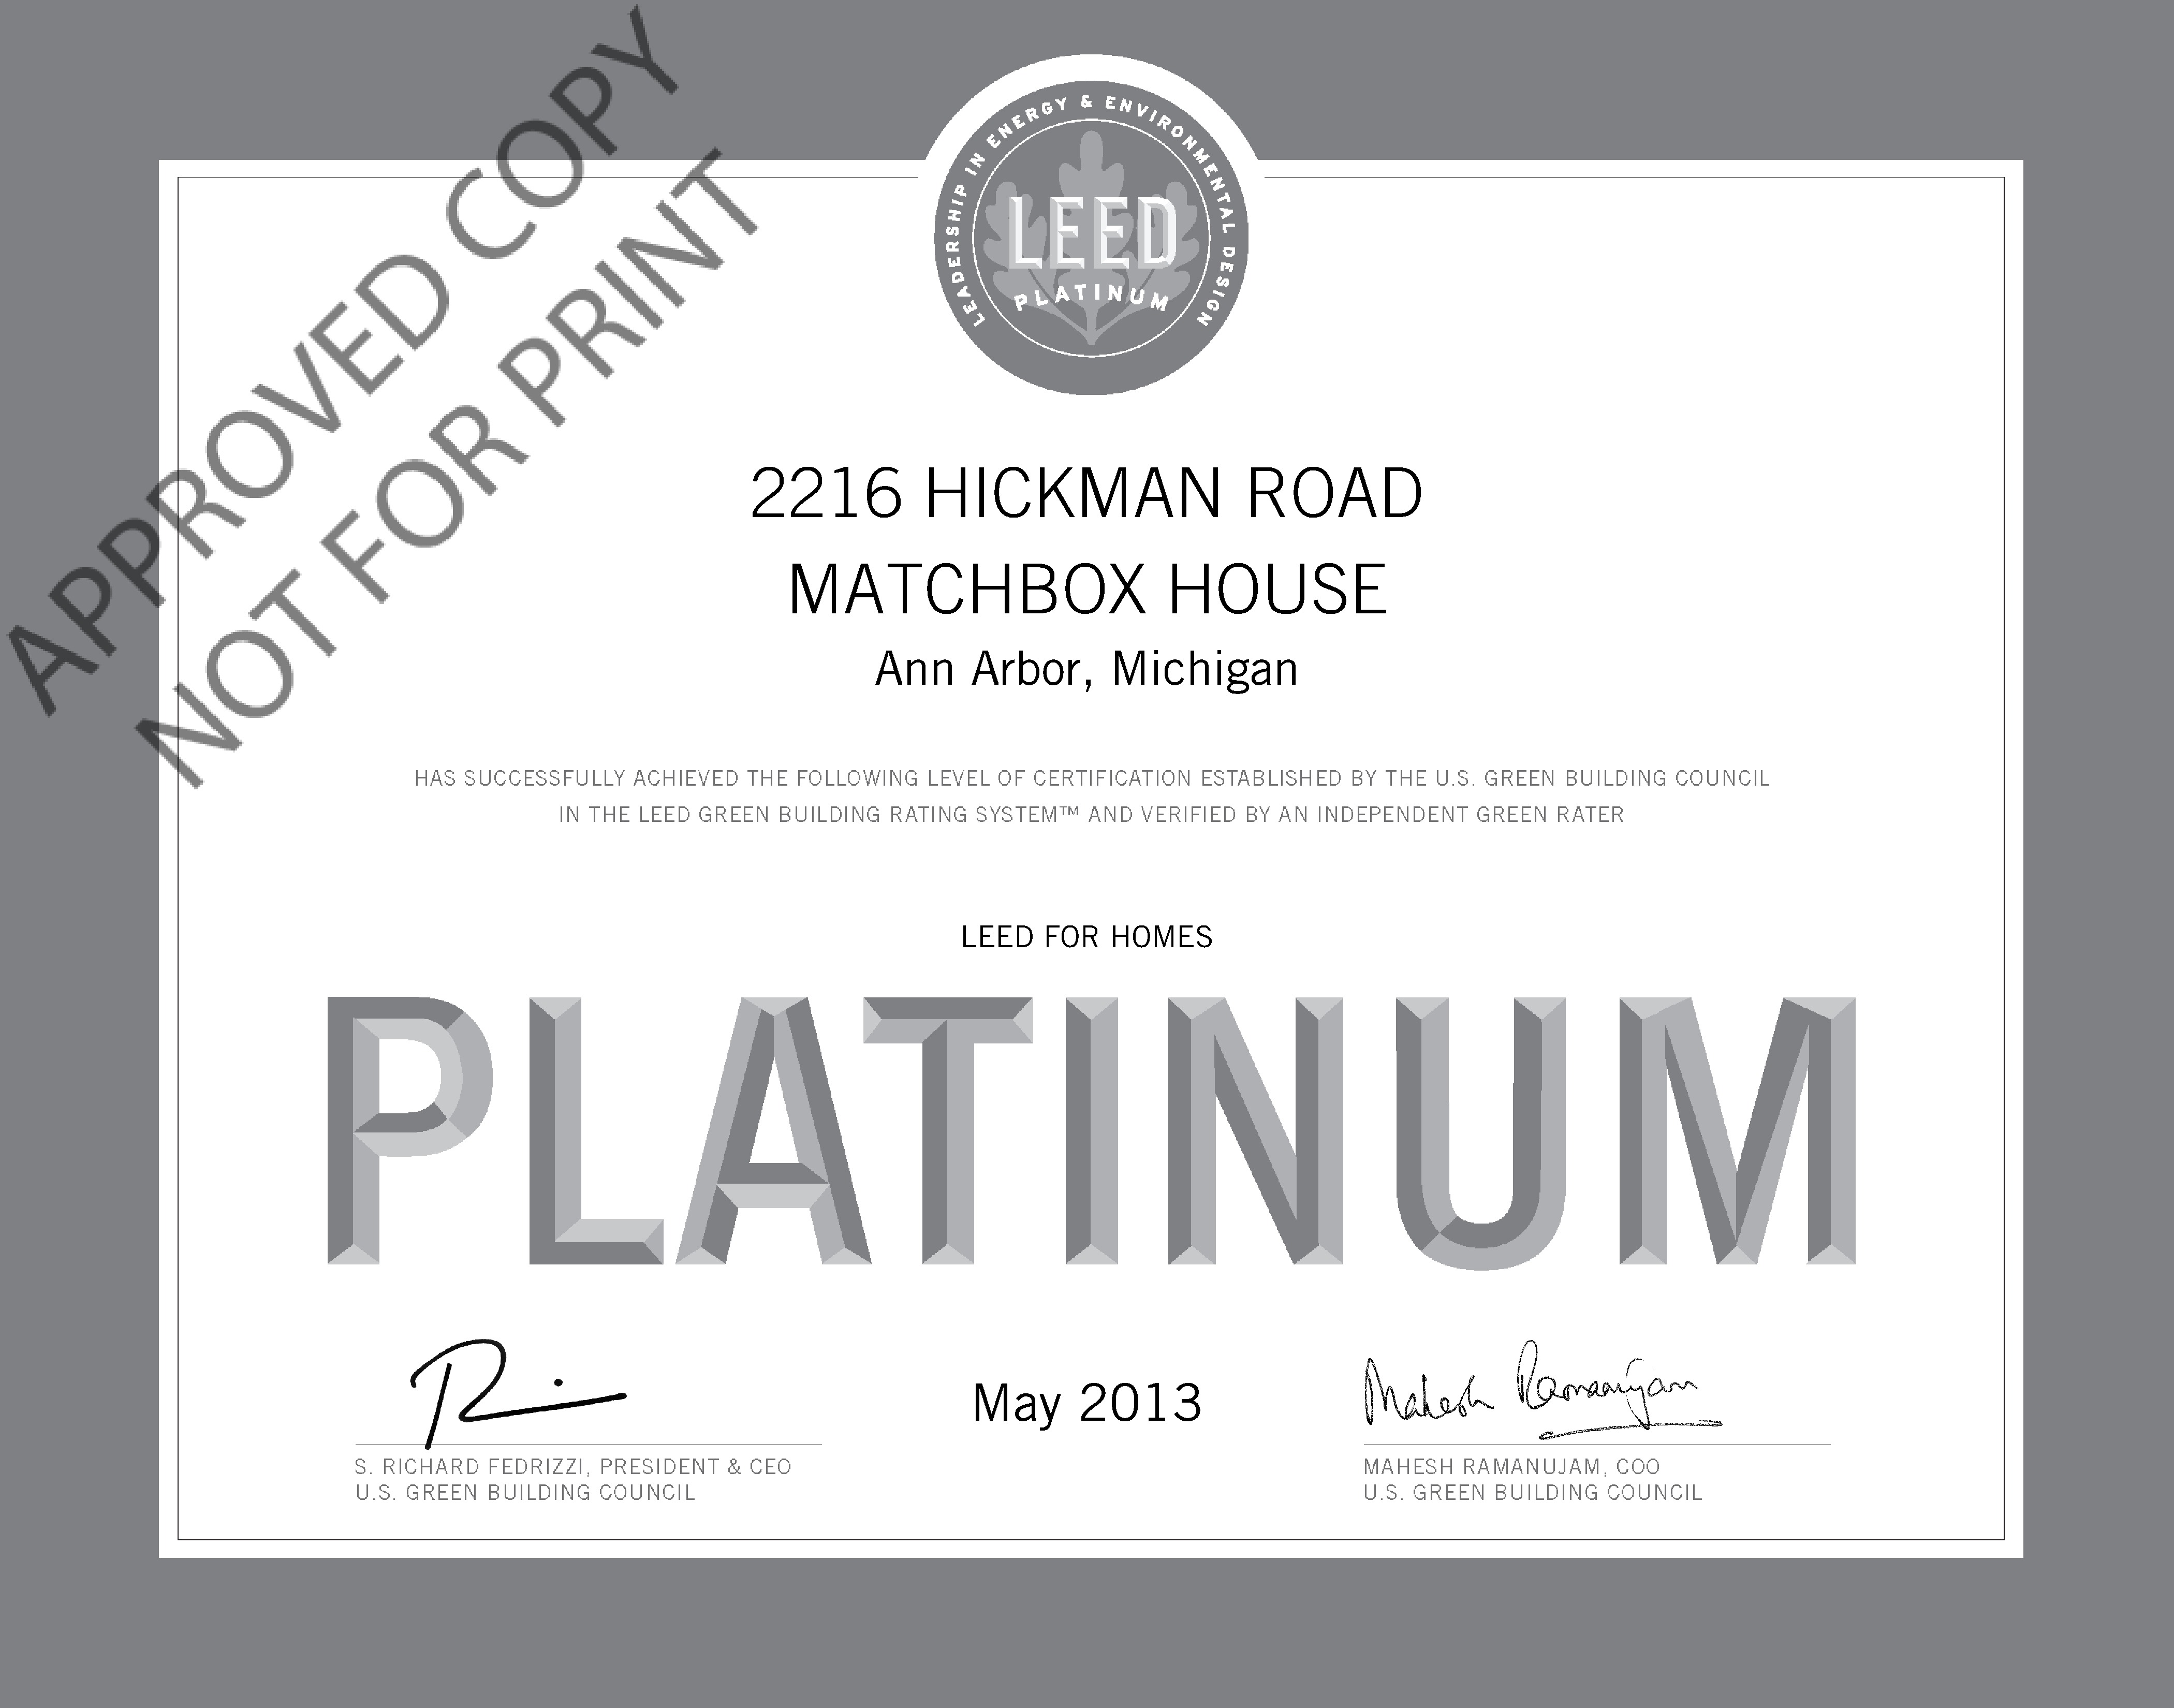 Leed platinum archives greenhome institute matchbox house certificate 1betcityfo Choice Image